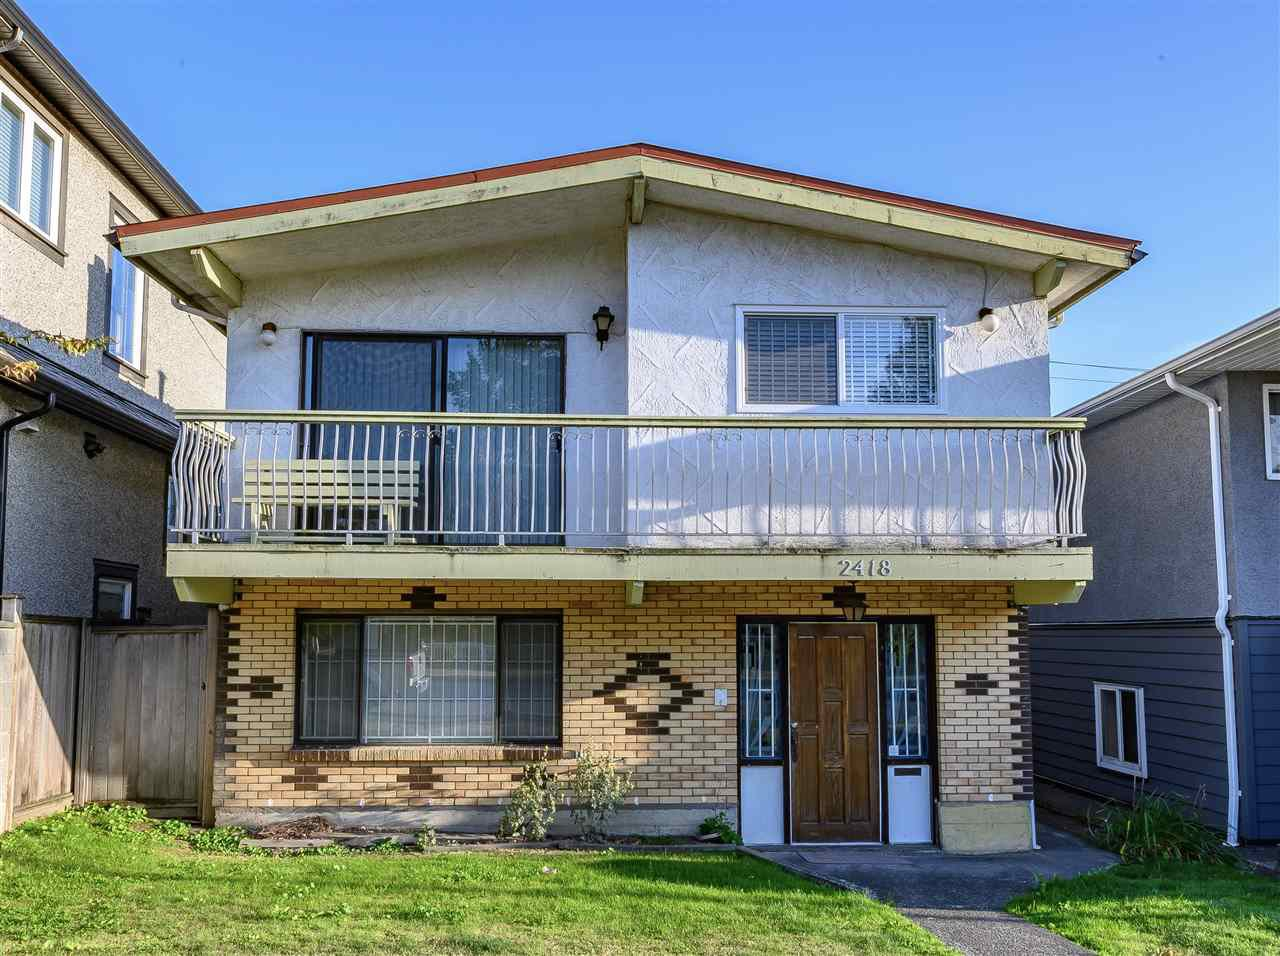 Main Photo: 2418 E 54TH Avenue in Vancouver: Fraserview VE House for sale (Vancouver East)  : MLS®# R2396451